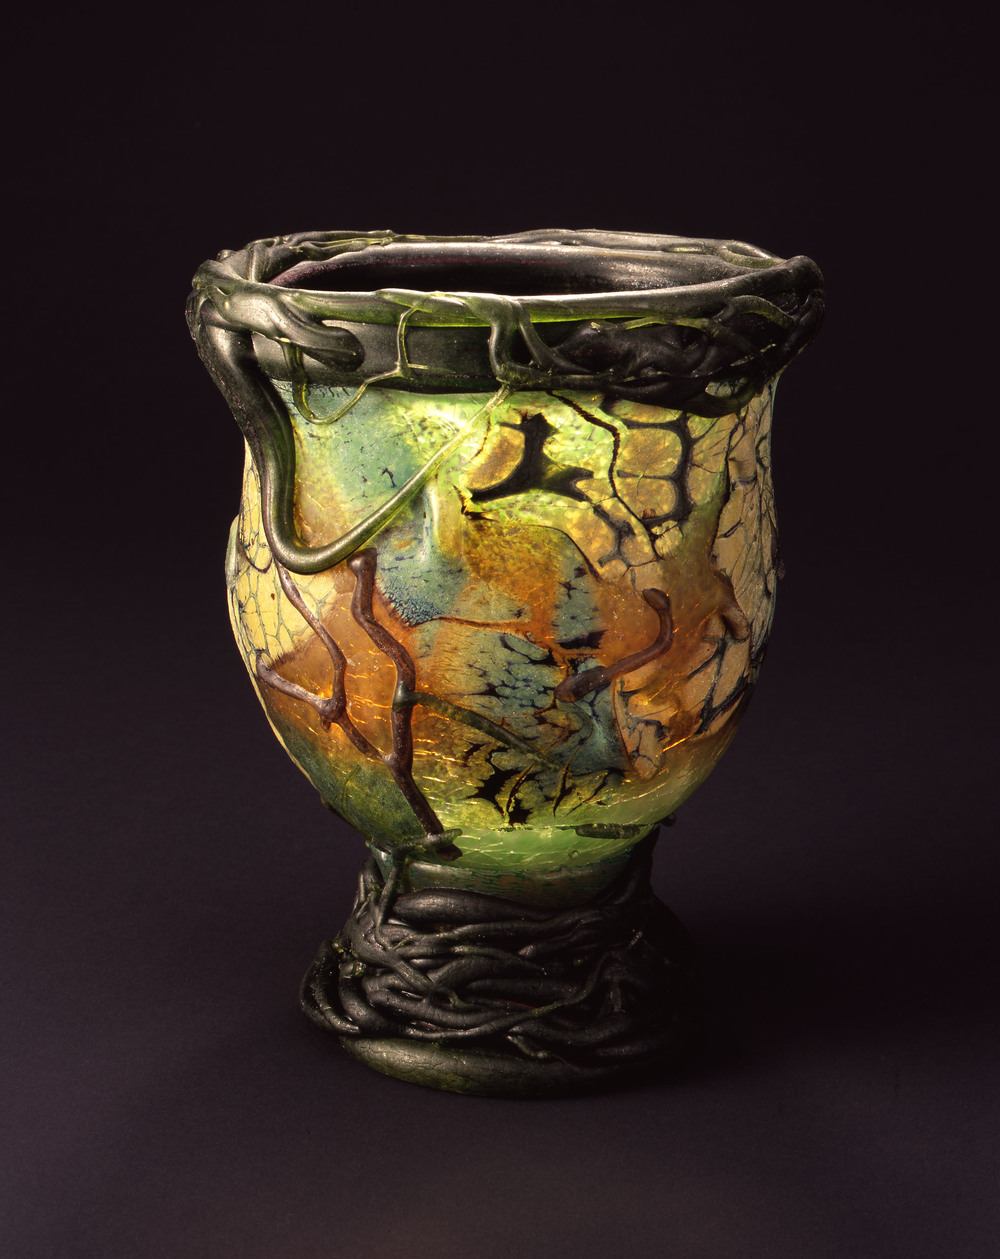 William Morris,  Footed Dragonfly Bowl    (2004, glass, 9 3/4 x 7 5/8 x 8 inches), WM.51